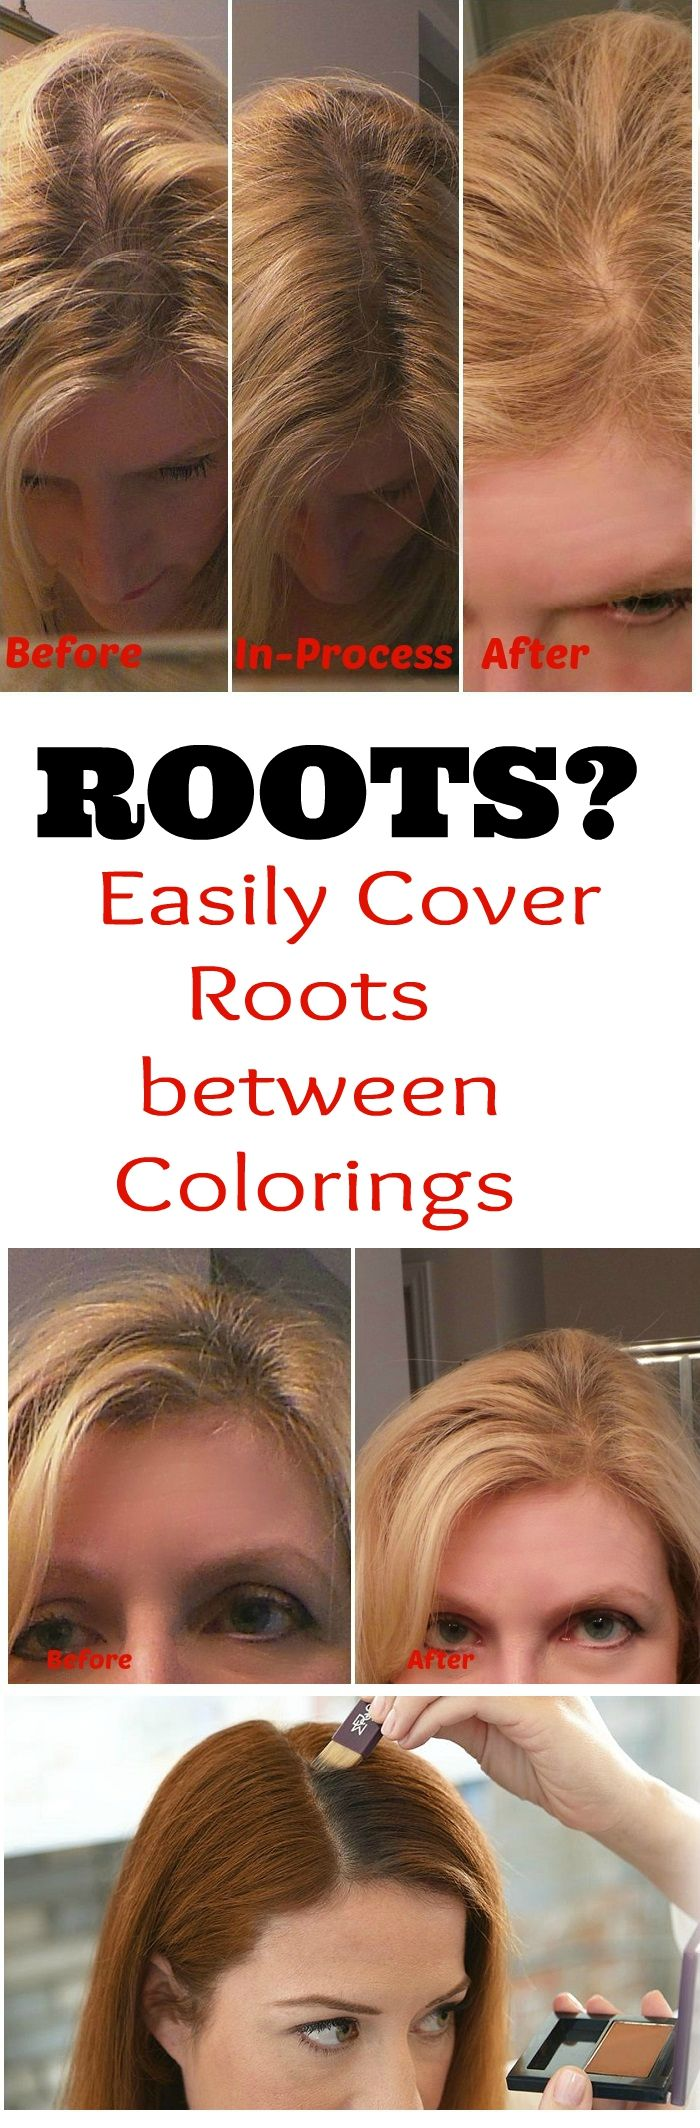 EEK! ROOTS? Get Color all the Way to the Roots with Madison Reed Root Touch Up Powder. Get #touchupforhair with #MadisonReed NEW Root Touch Up Also at #sephora AD